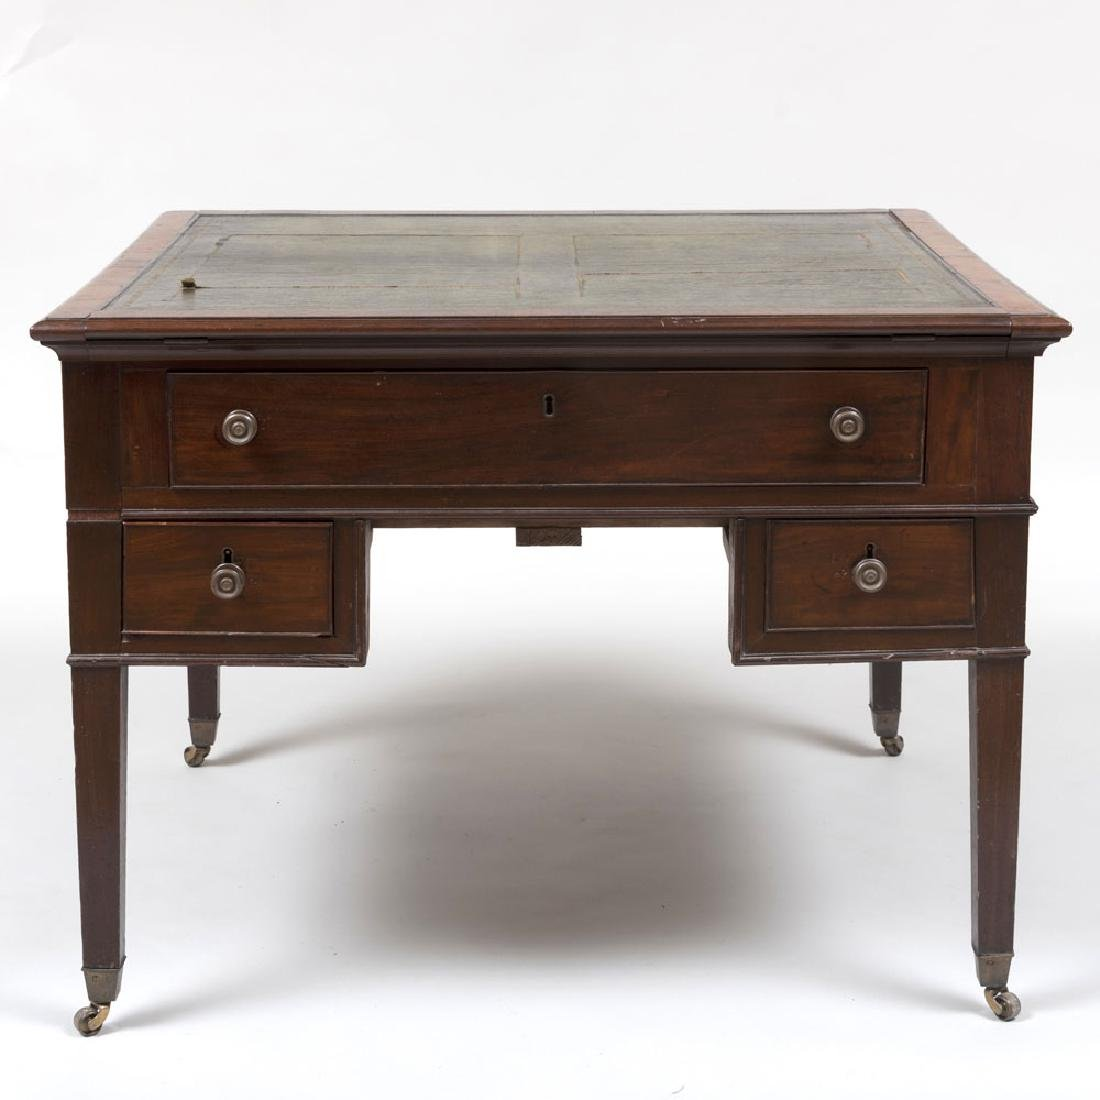 Late George III Mahogany Partner's Desk - 3